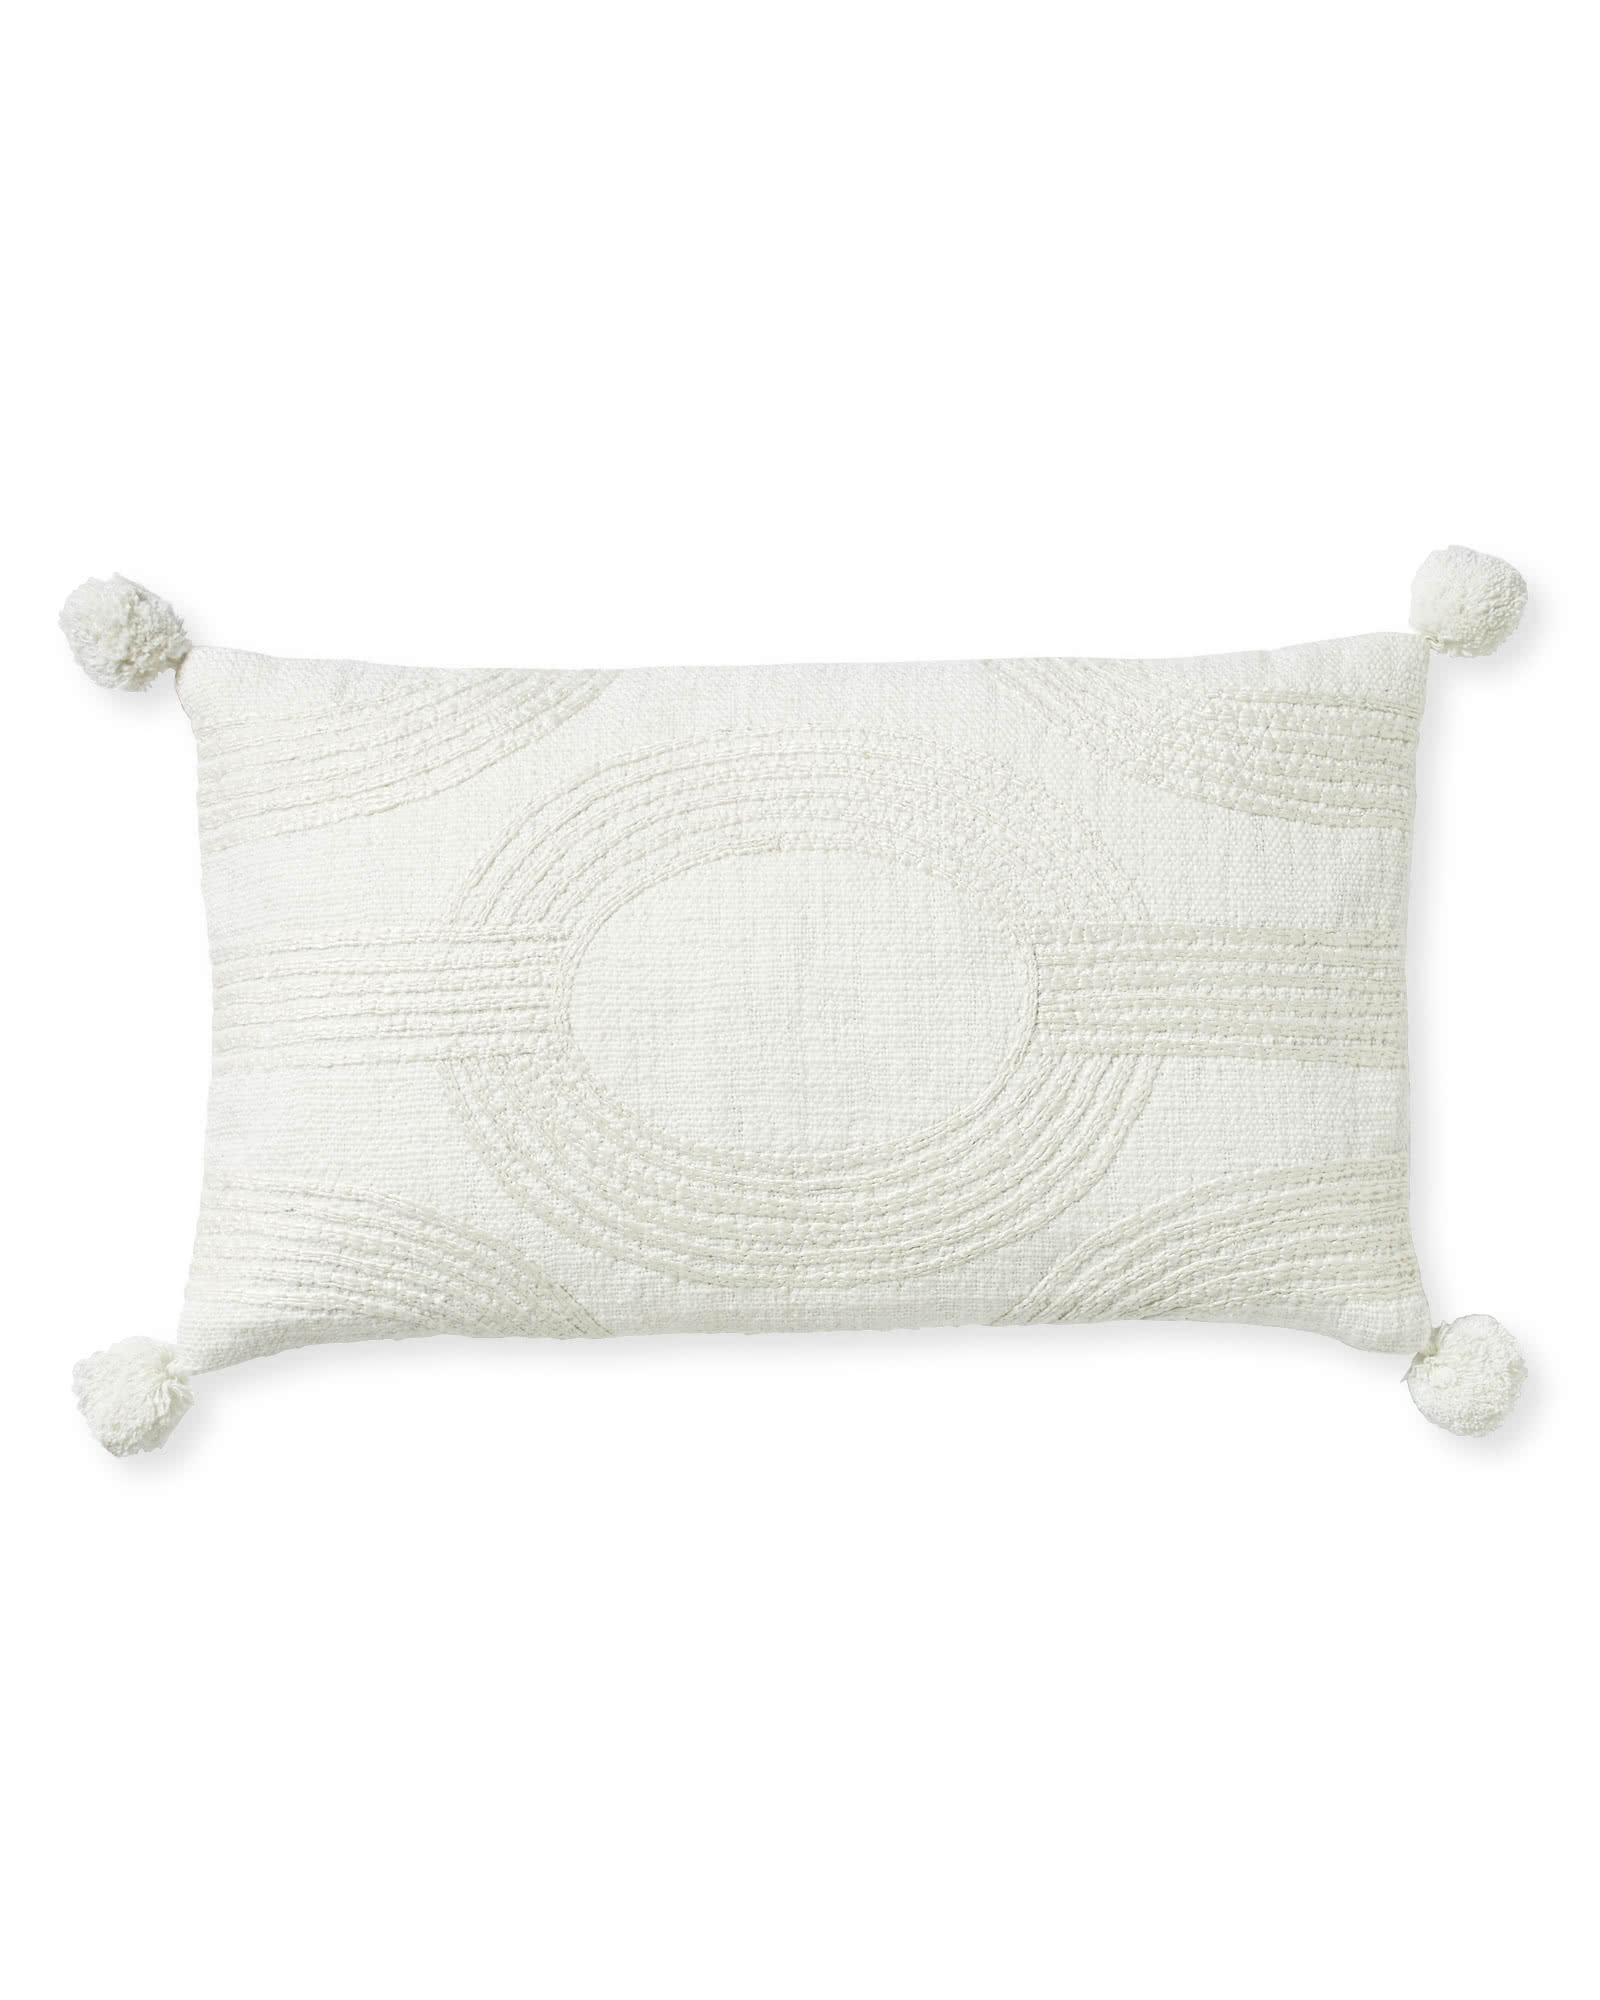 Naples Pillow Cover,